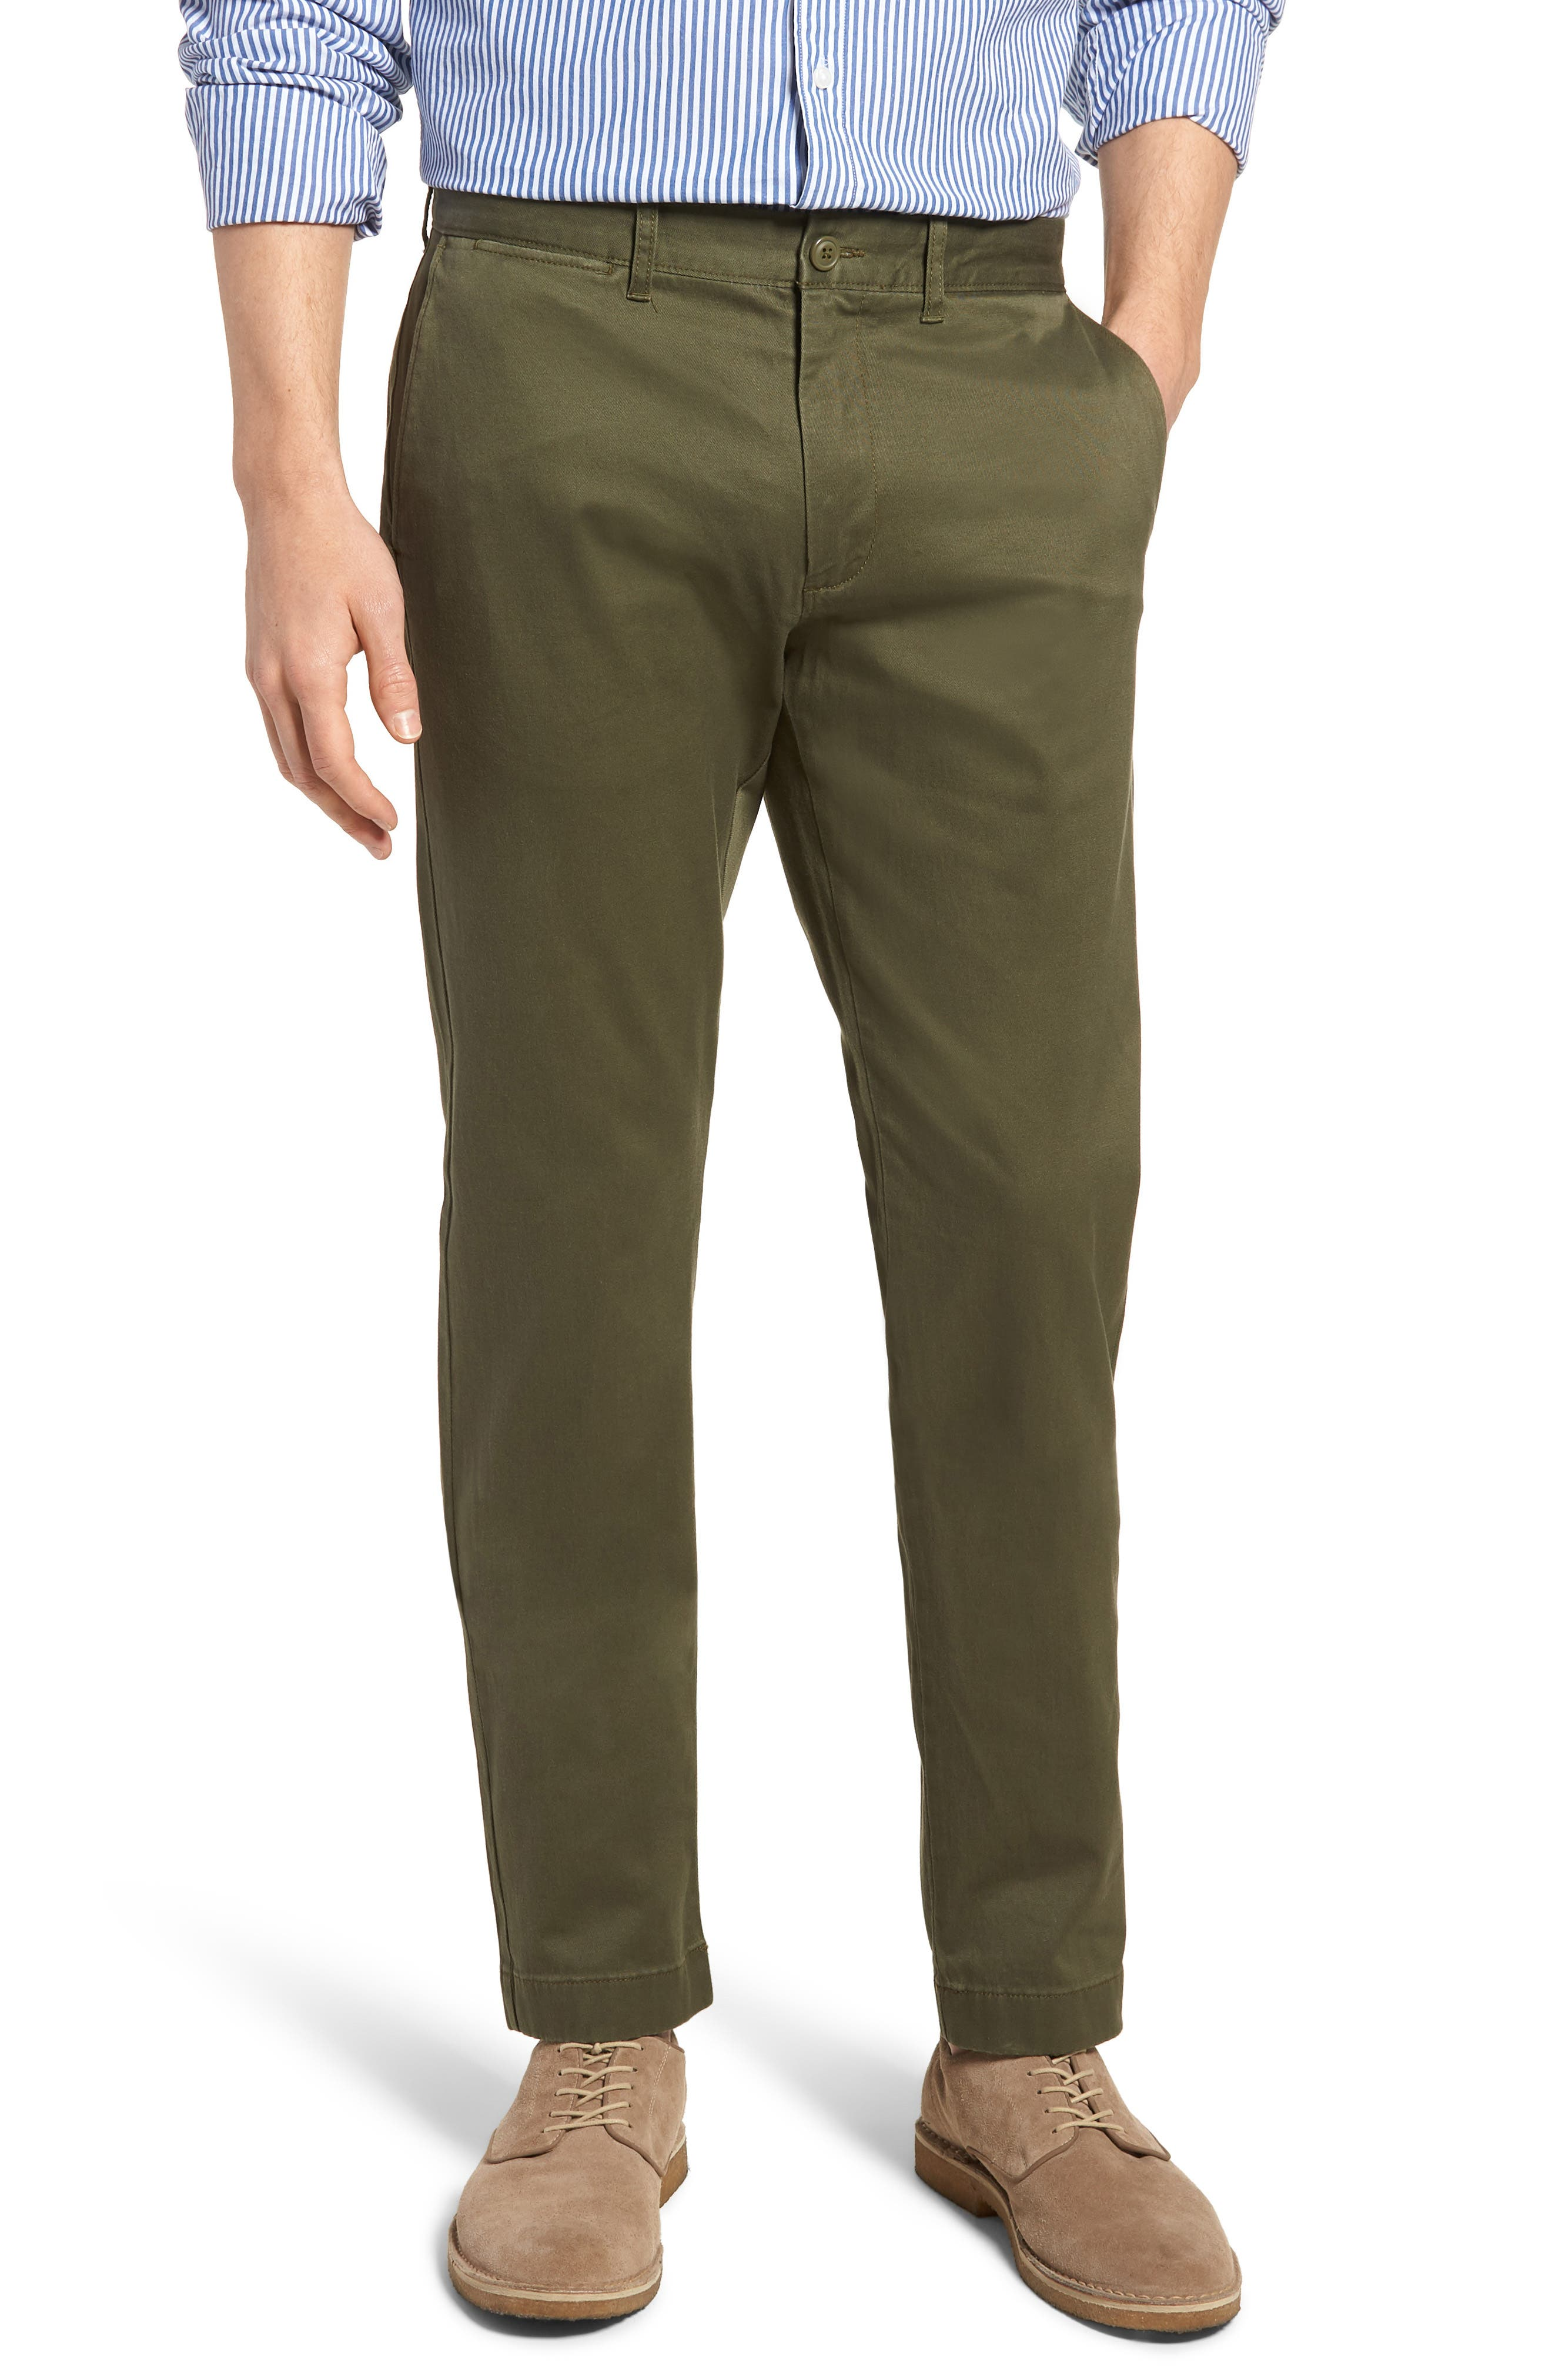 484 Slim Fit Stretch Chino Pants,                             Main thumbnail 8, color,